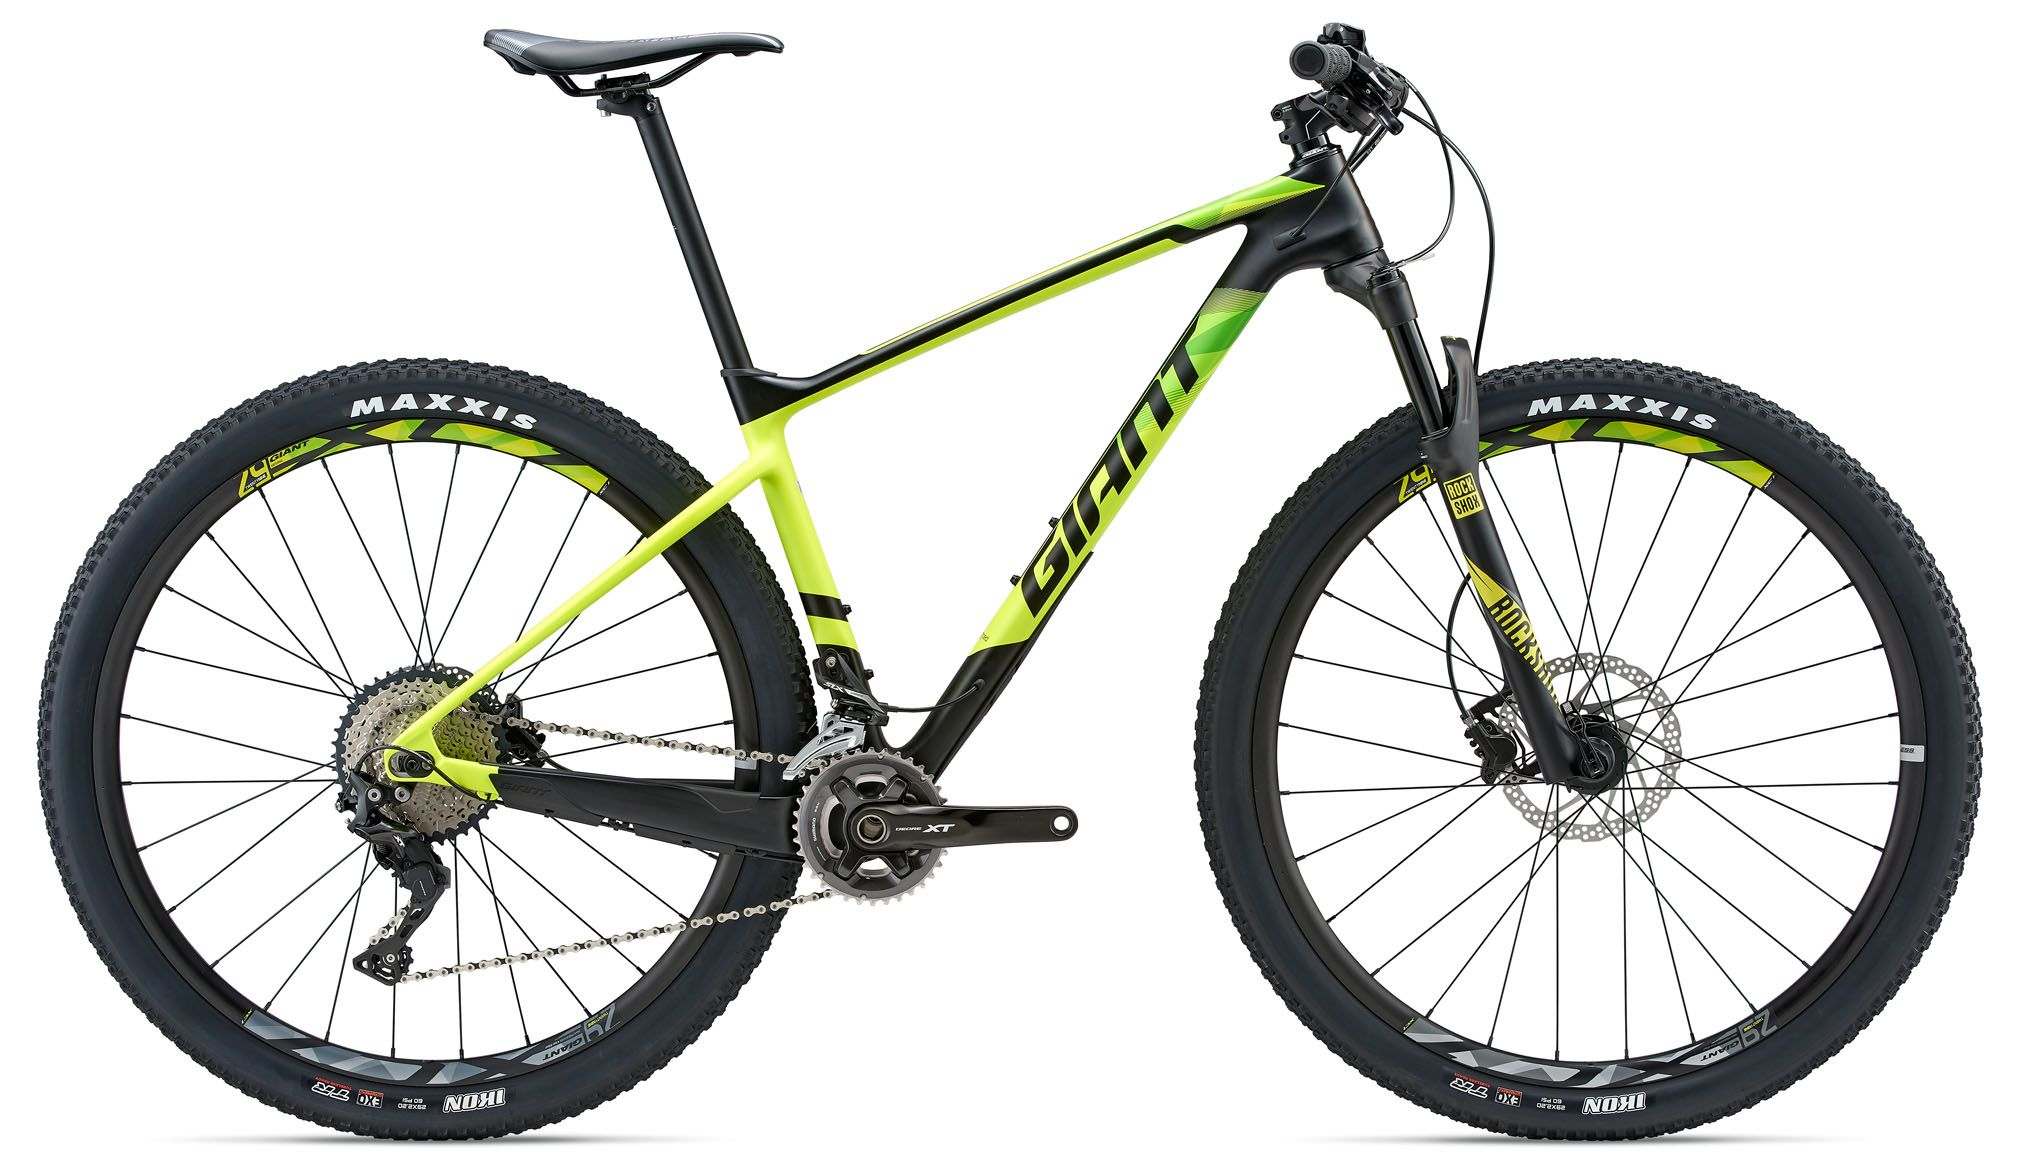 Велосипед Giant XTC Advanced 29er 2 GE 2018 велосипед giant xtc advanced 27 5 2 2014